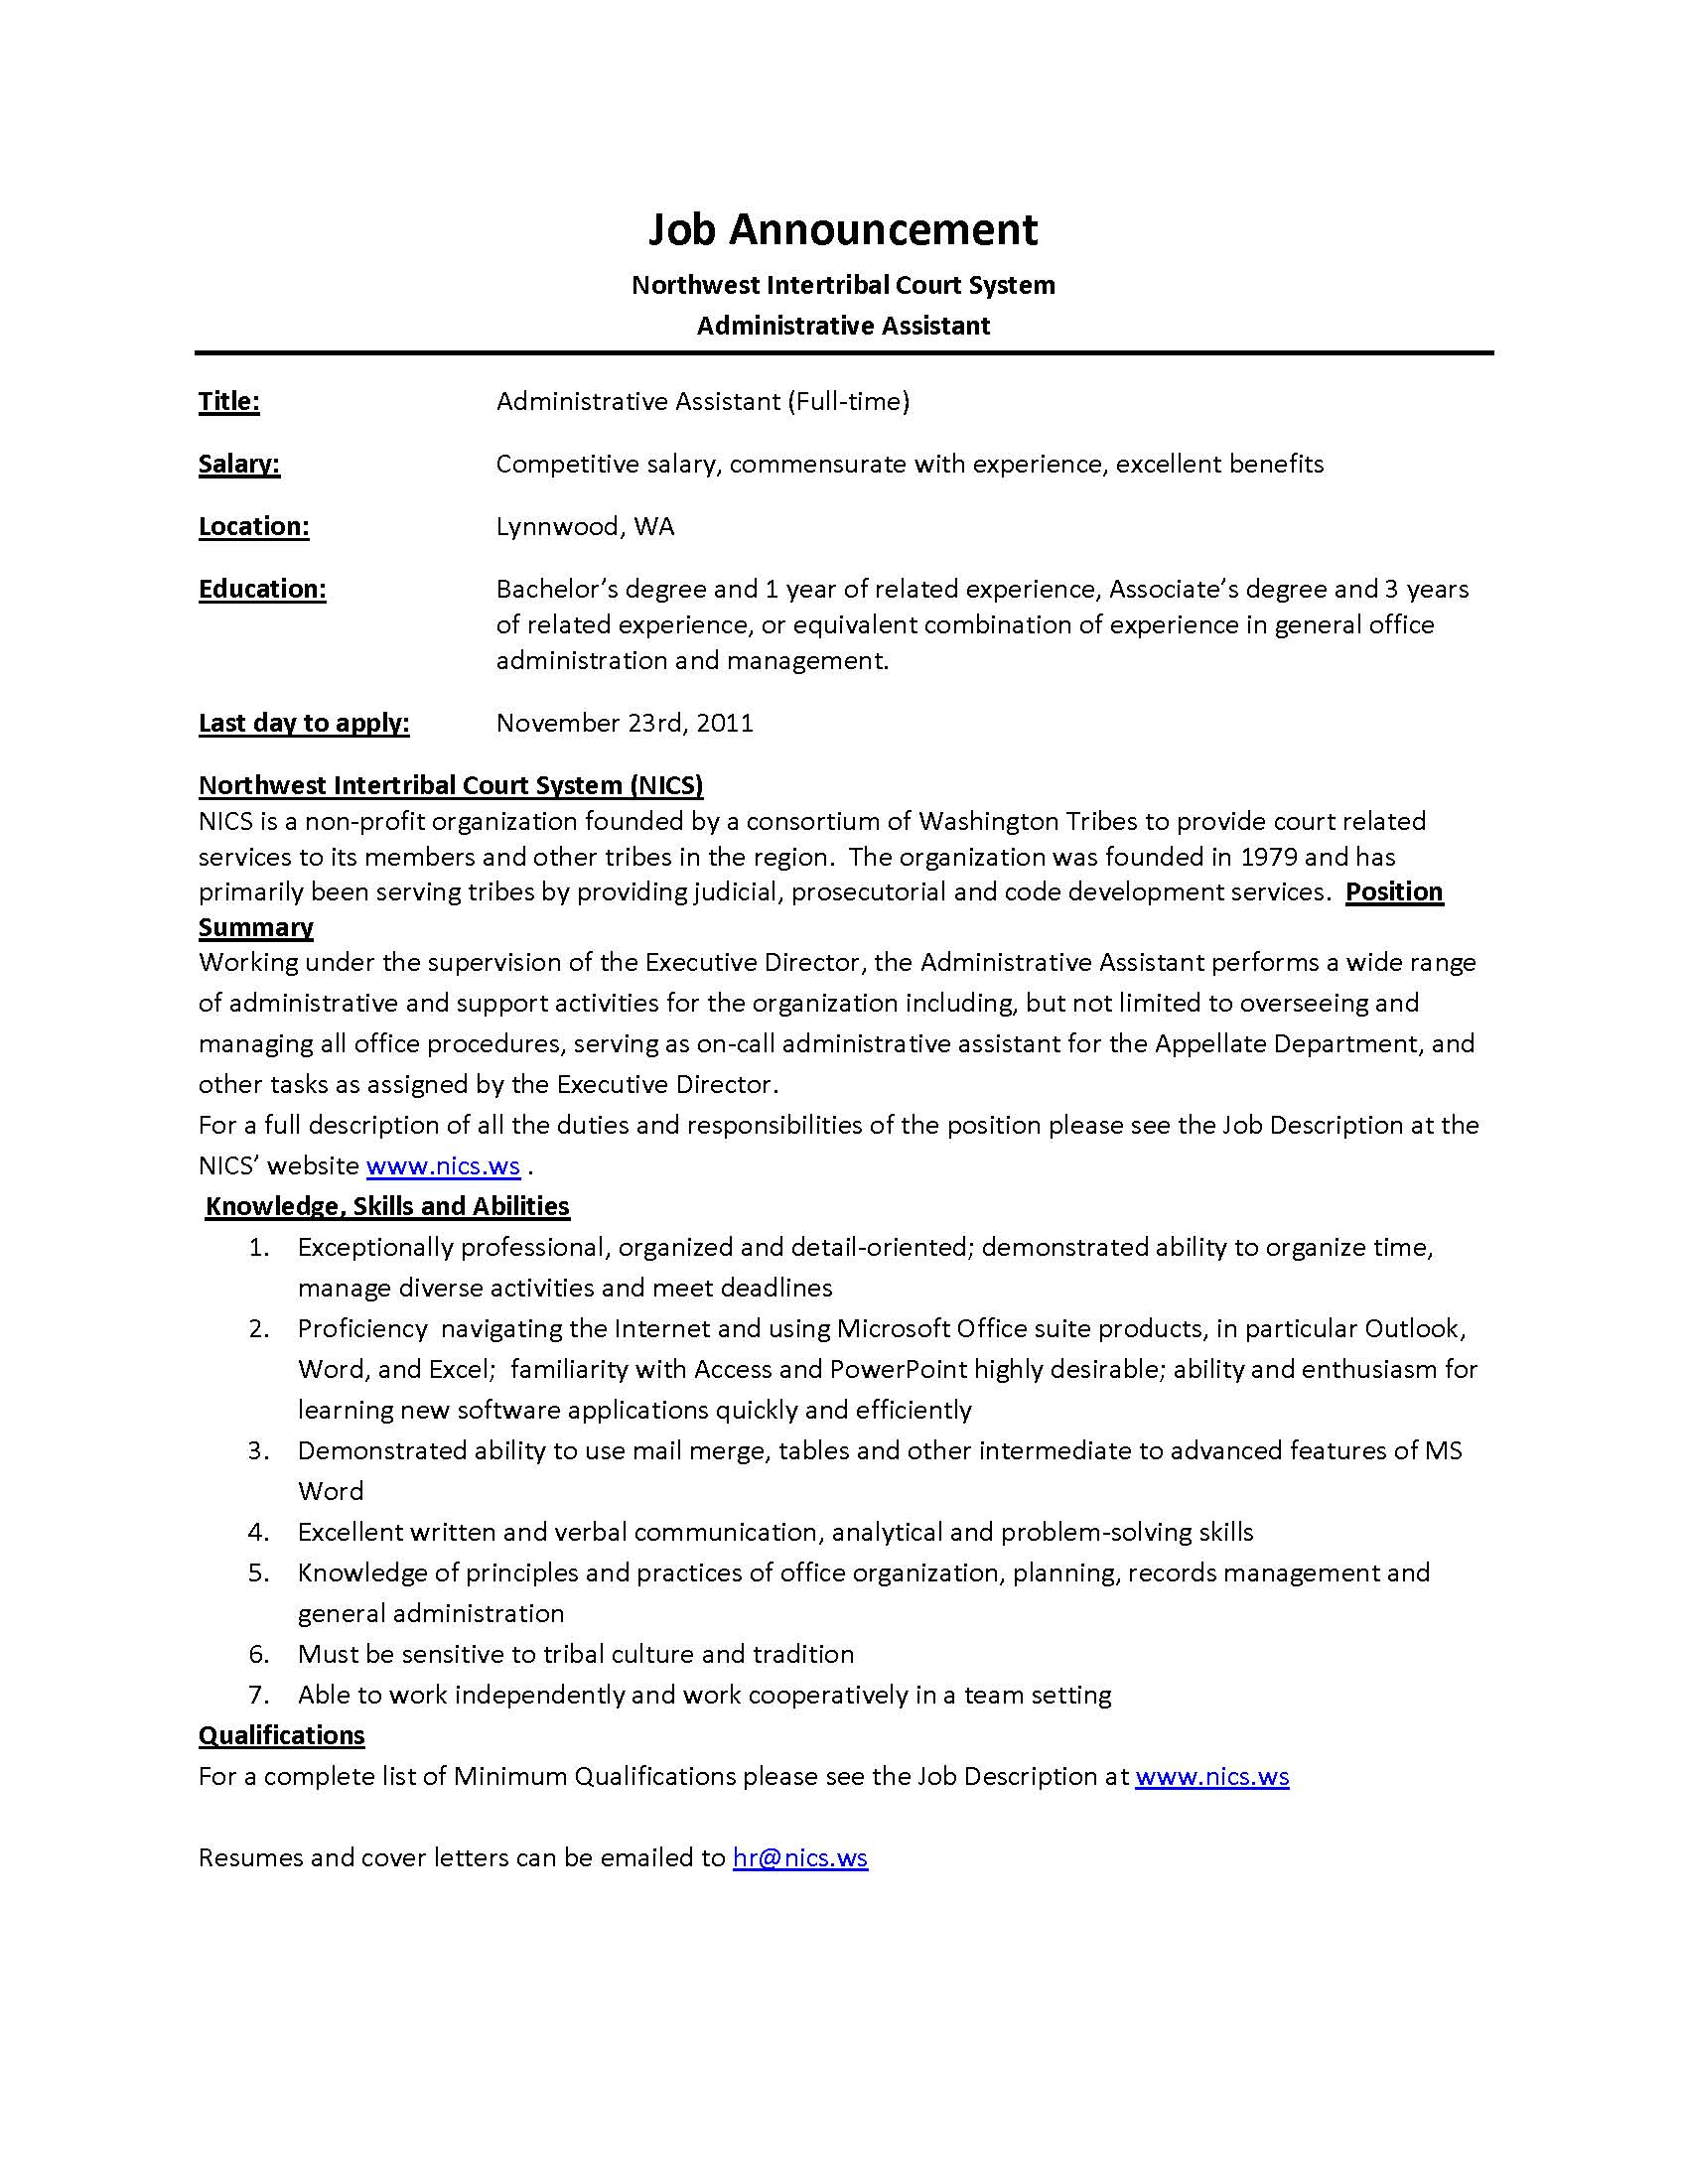 administrative clerk duties professional resume cover letter sample administrative clerk duties administrative clerk jd northwest territories sample job description for administrative assistant pictures to